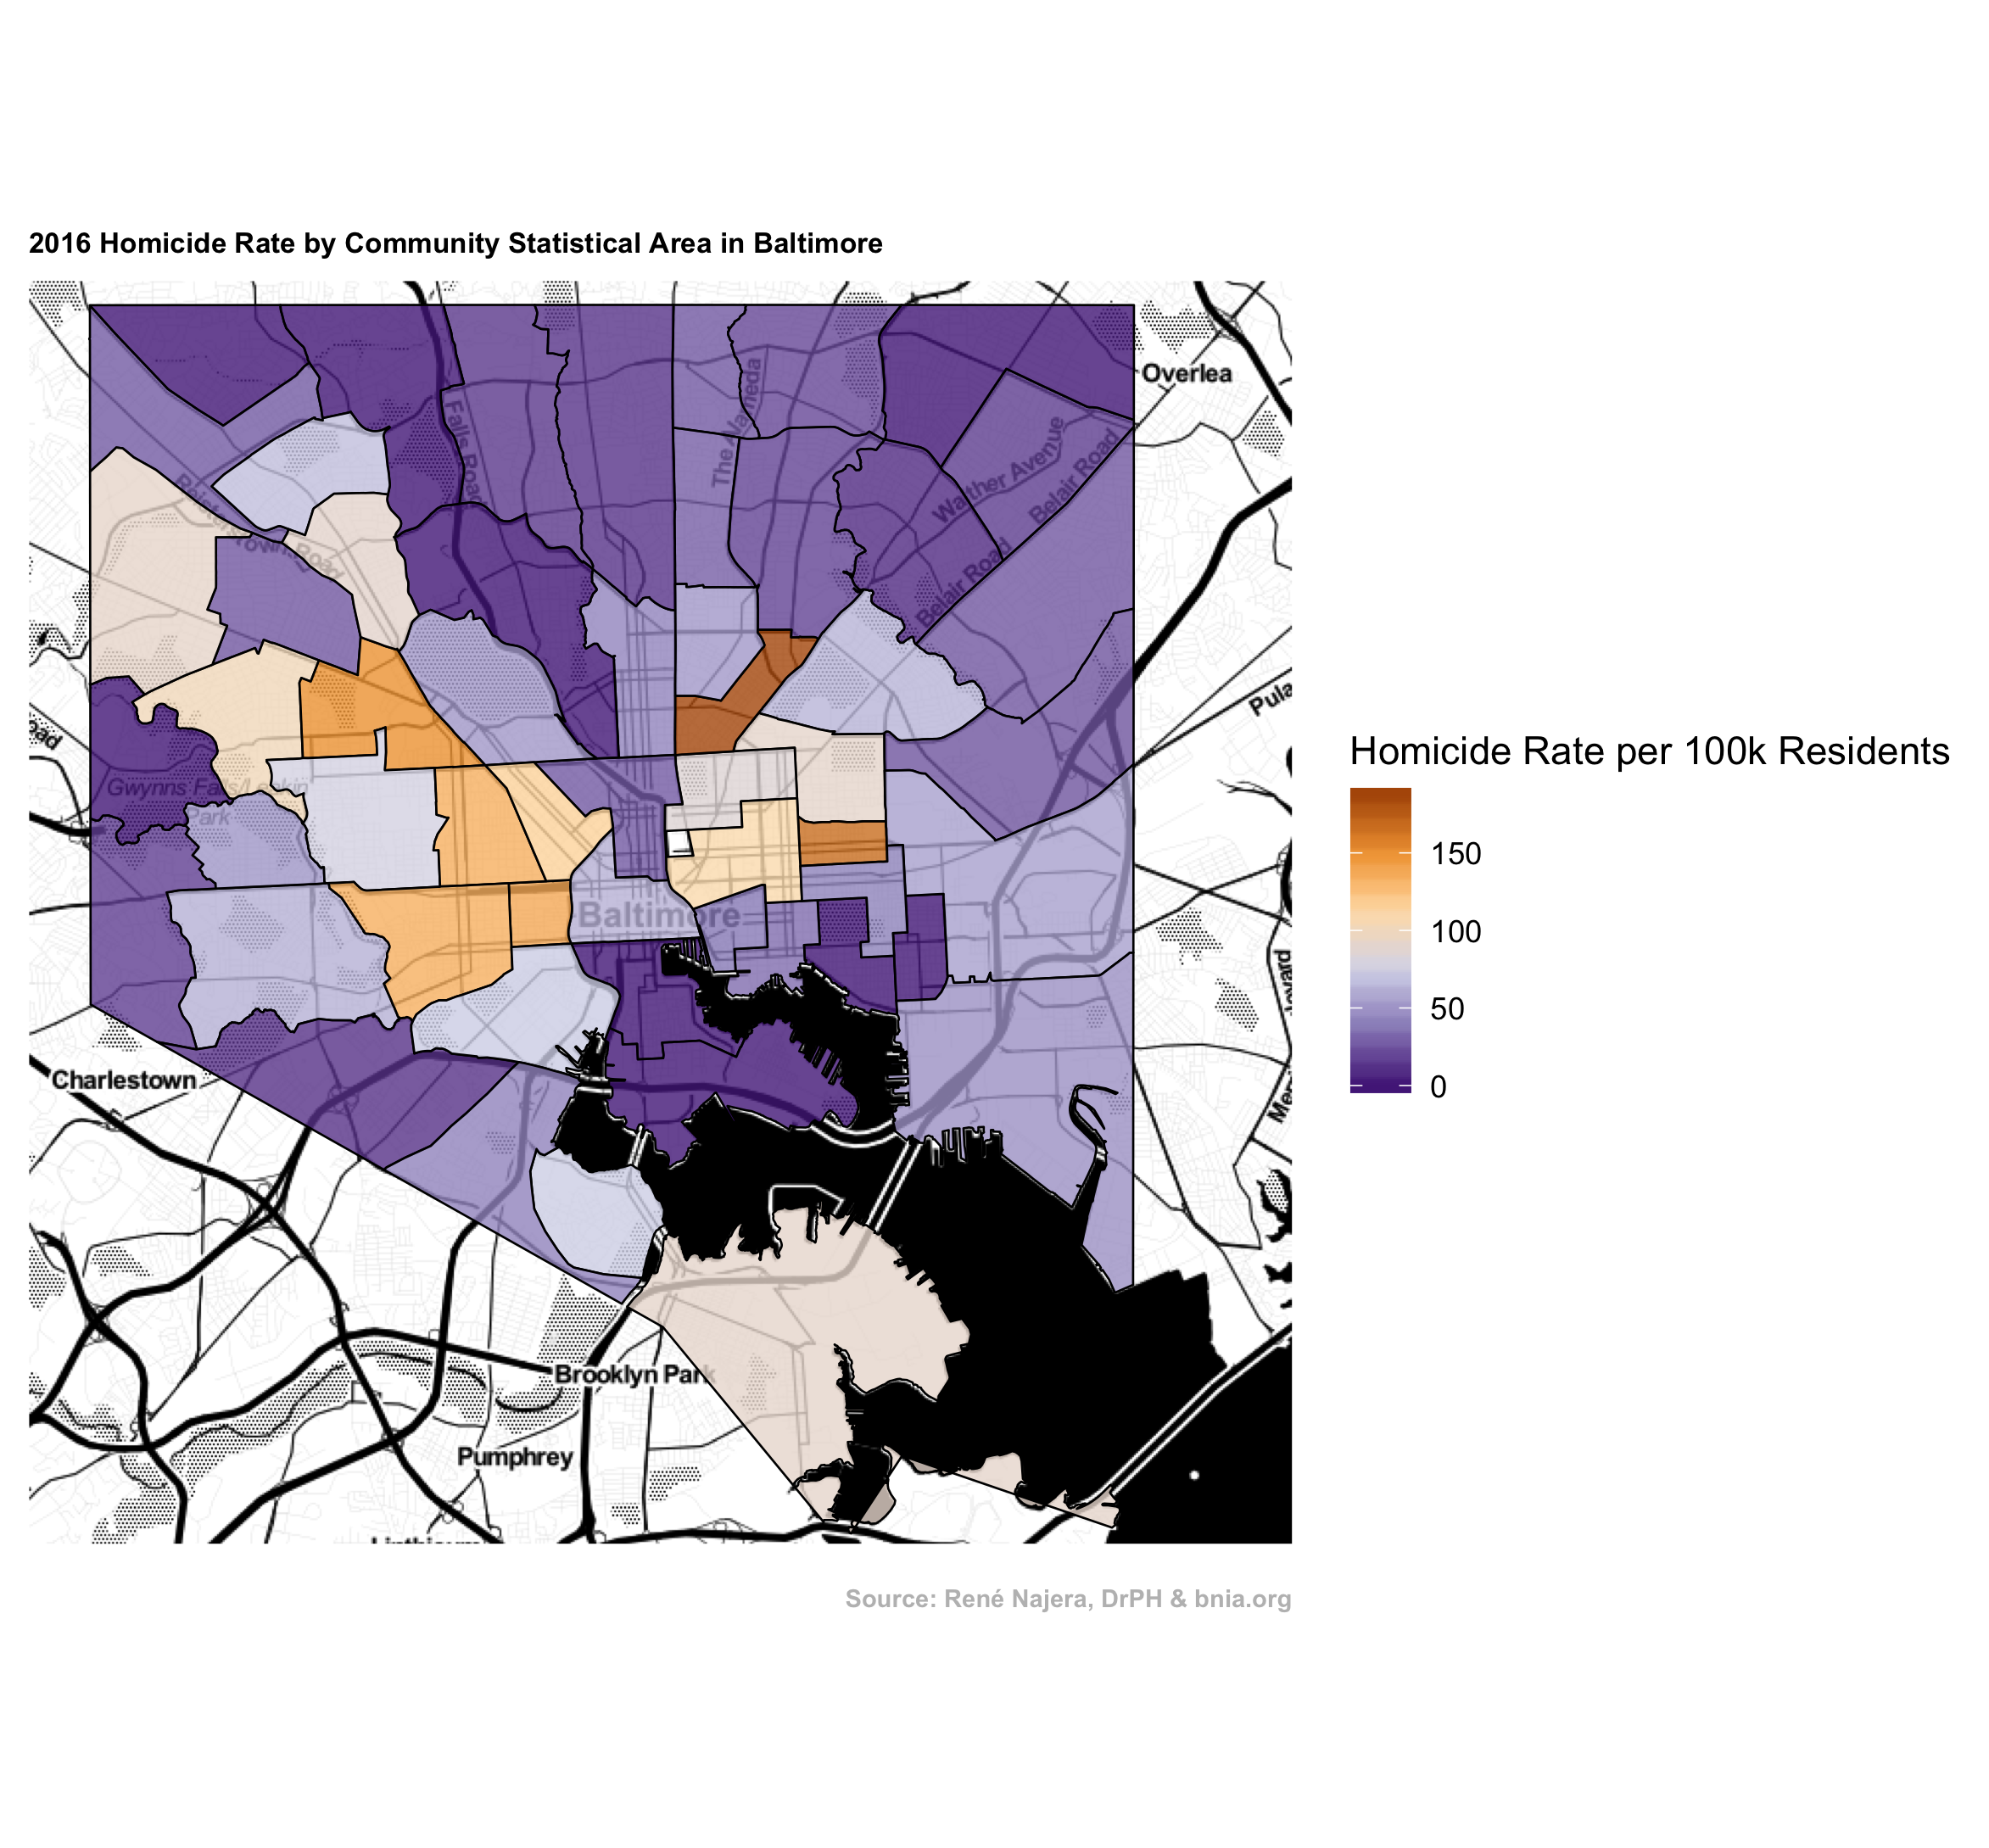 Choropleth Map of Homicide Rate in Baltimore